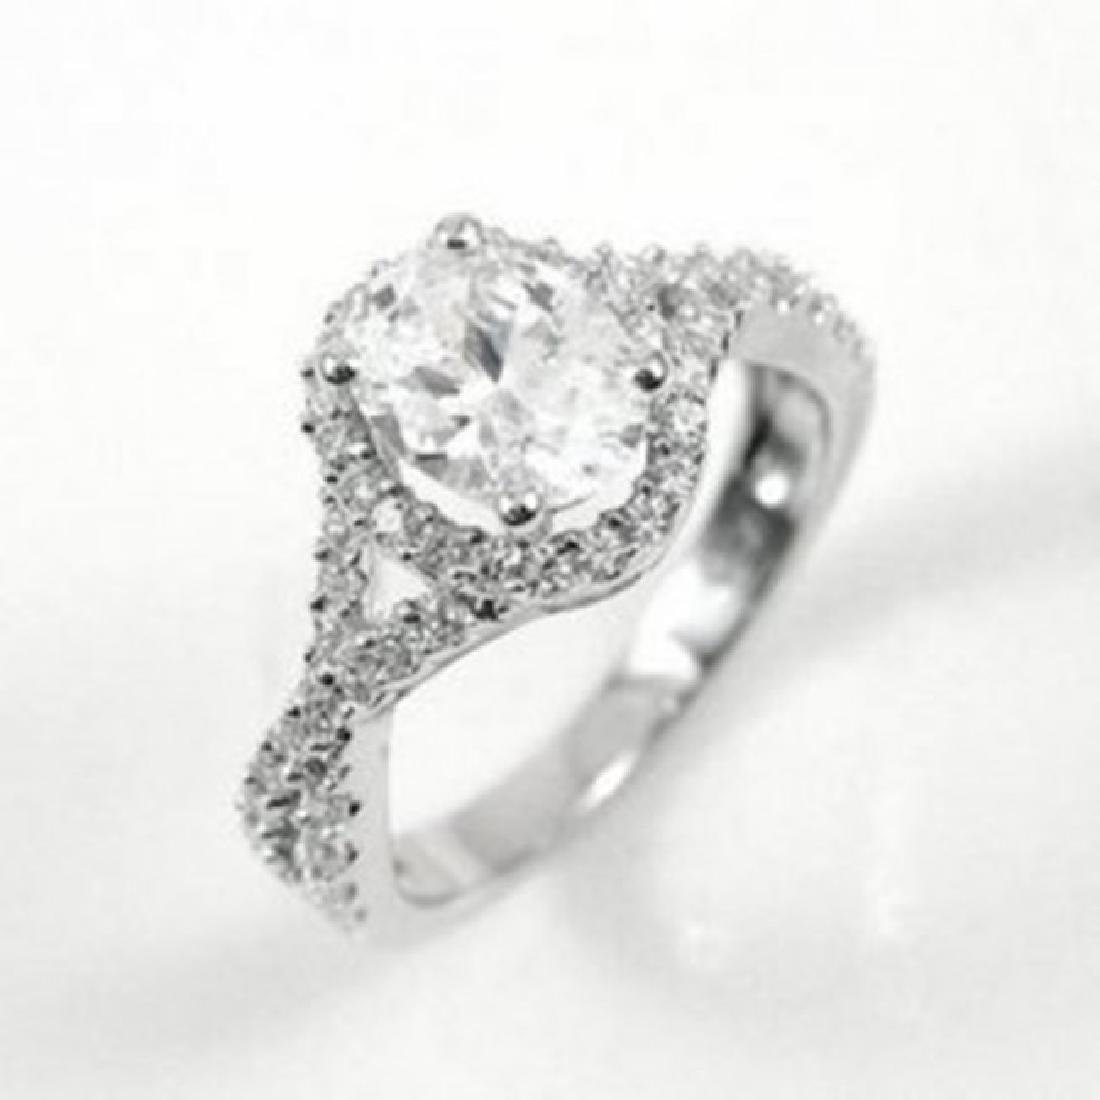 Creation Diamond Ring 1.91Ct 14k W/G Overlay - 2